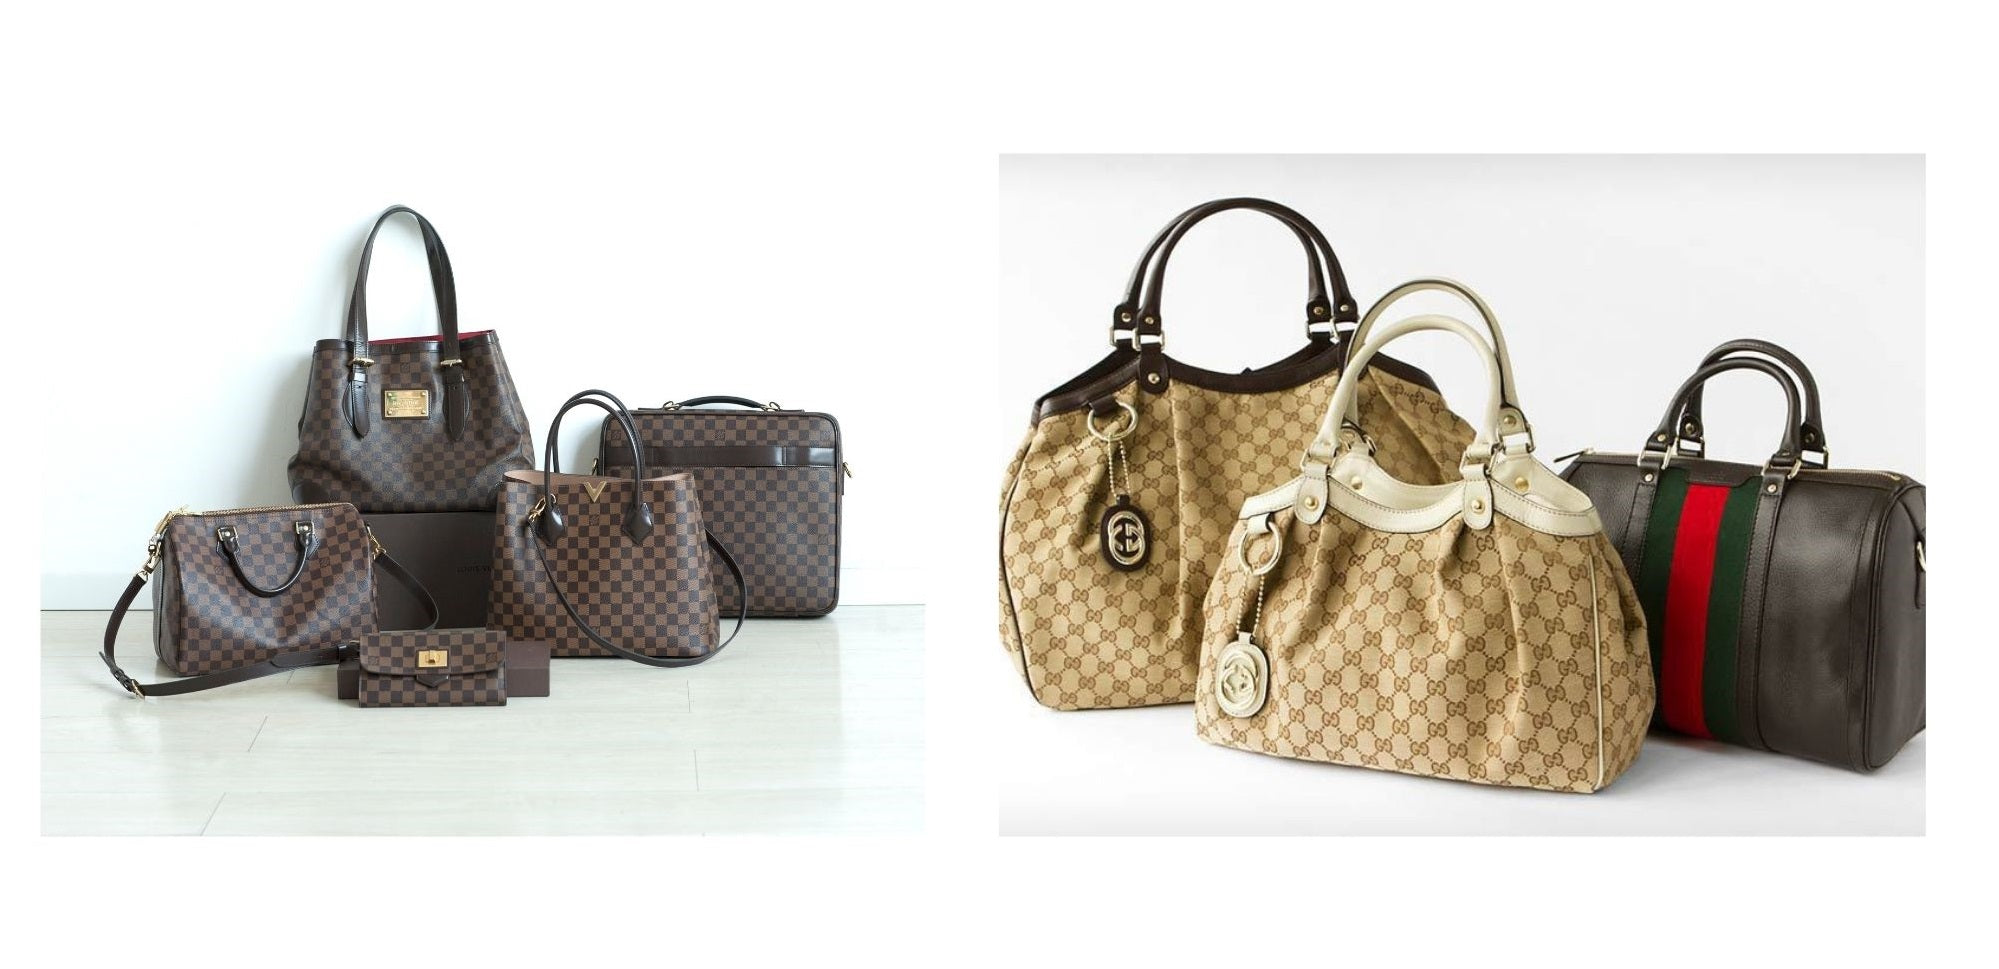 Which Brand Is Better: Louis Vuitton vs Gucci Range of Items